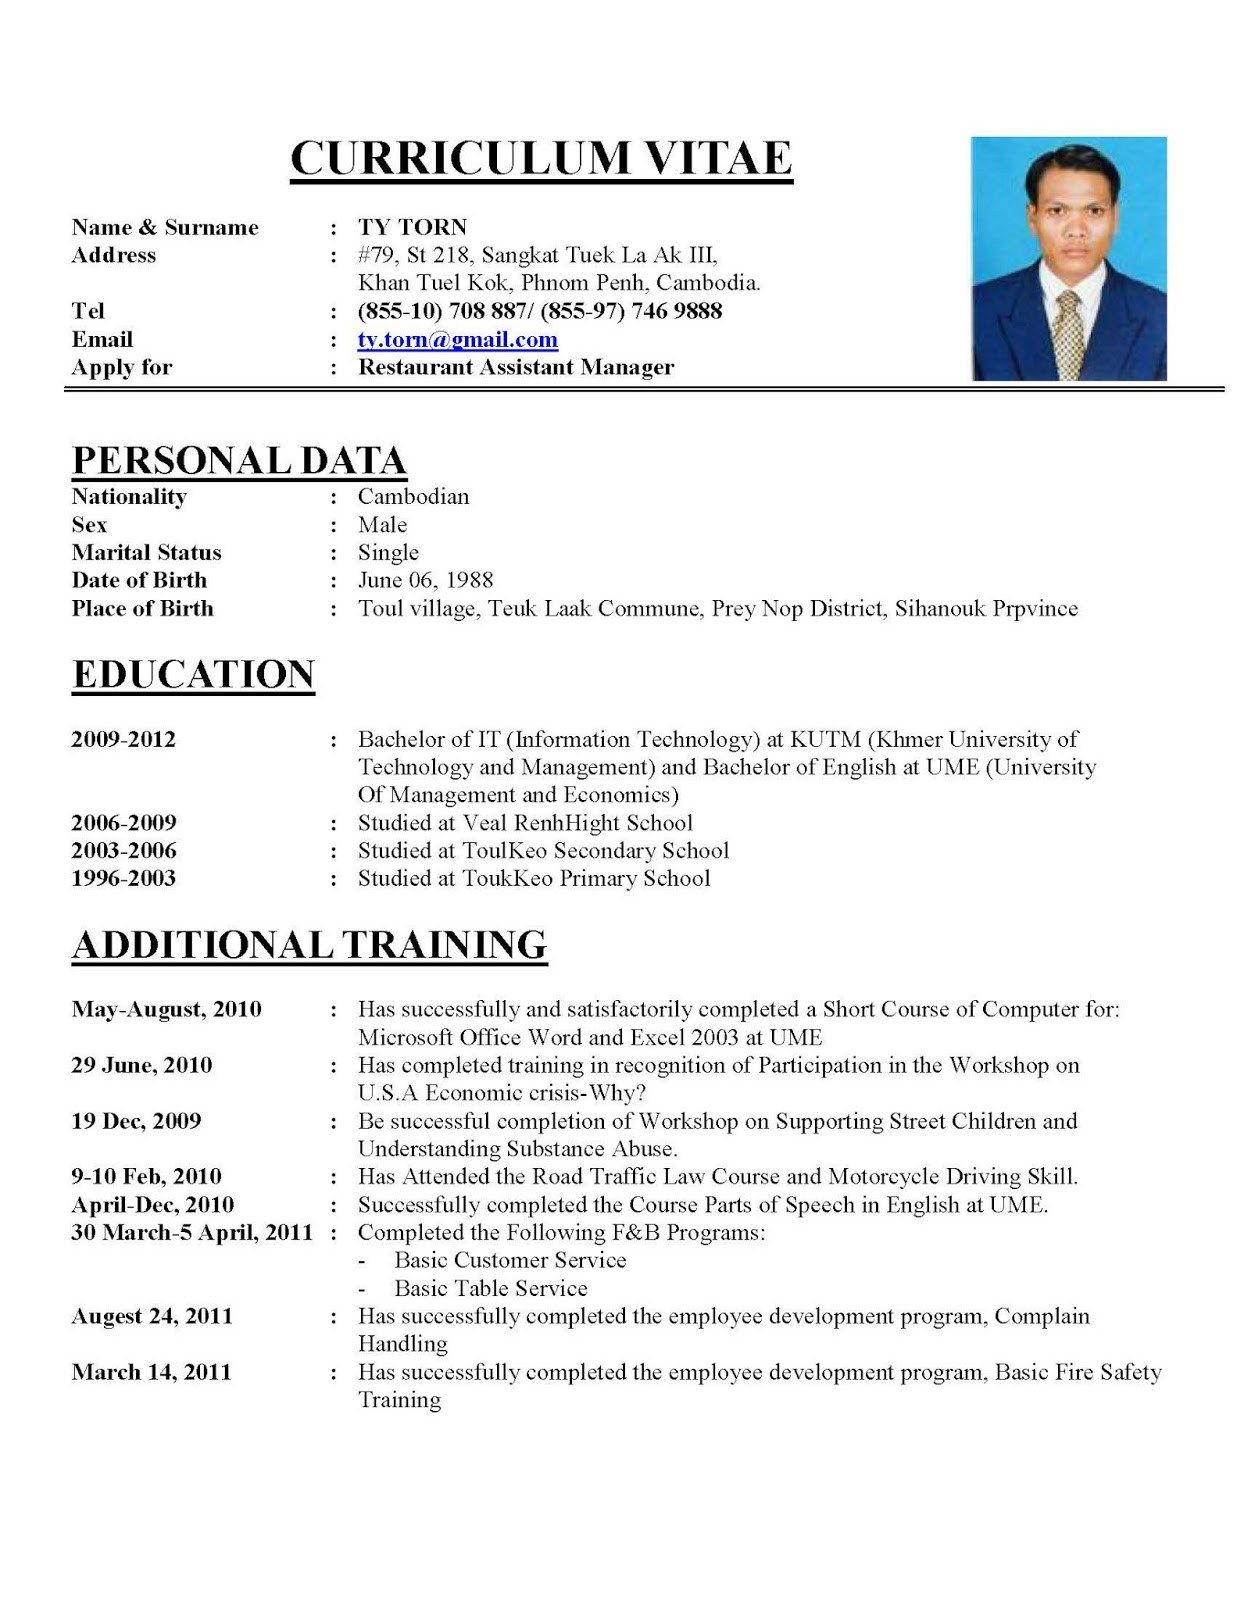 pin on can you do my homework for the perfect resume marketing skills great teacher Resume The Perfect Resume 2018